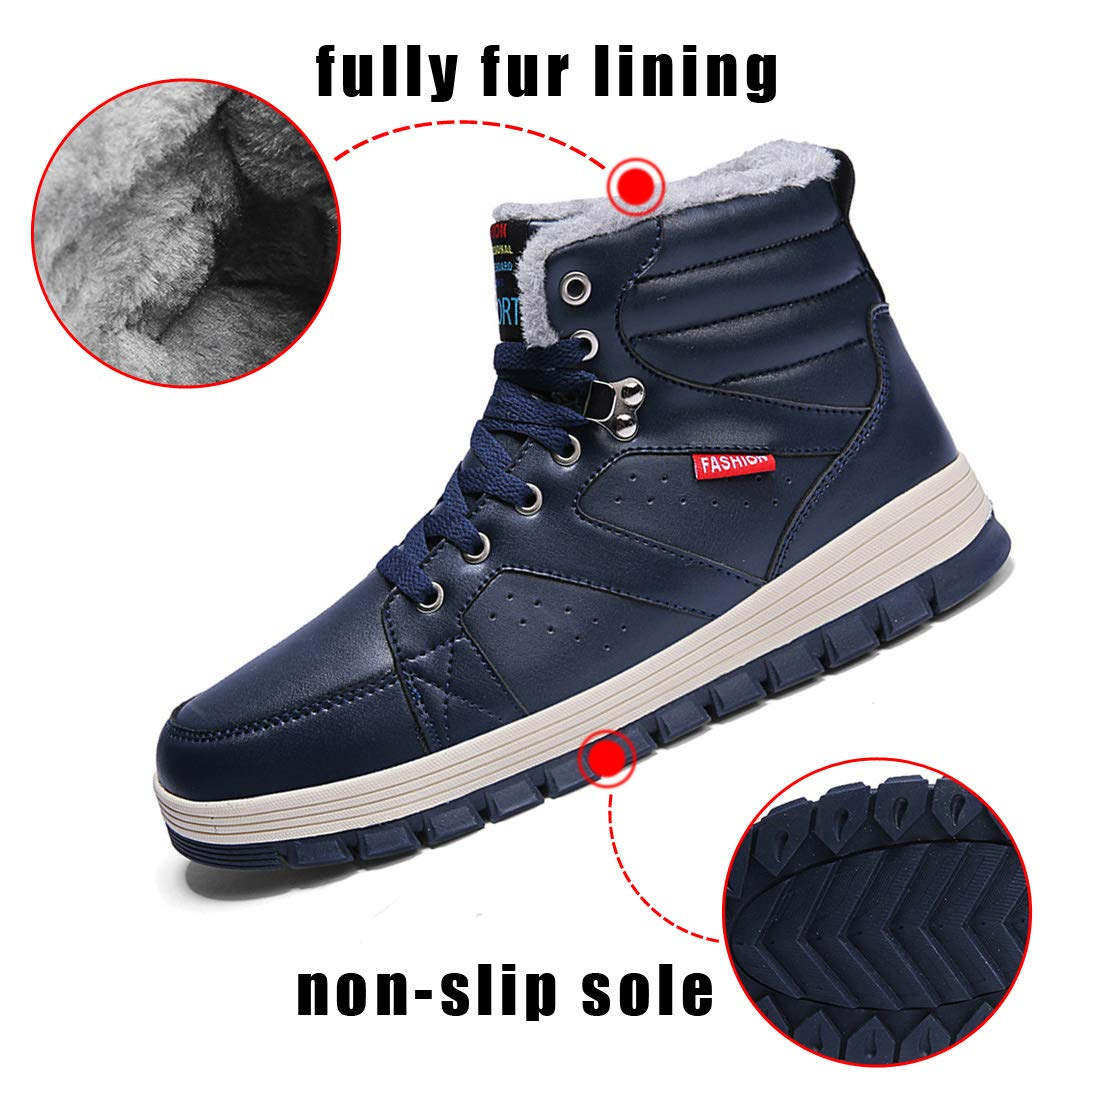 Ceyue Mens Leather Snow Boots Lace up Ankle Sneakers High Top Winter Warm Walking Shoes with Fur Lining(Blue 43) by Ceyue (Image #3)